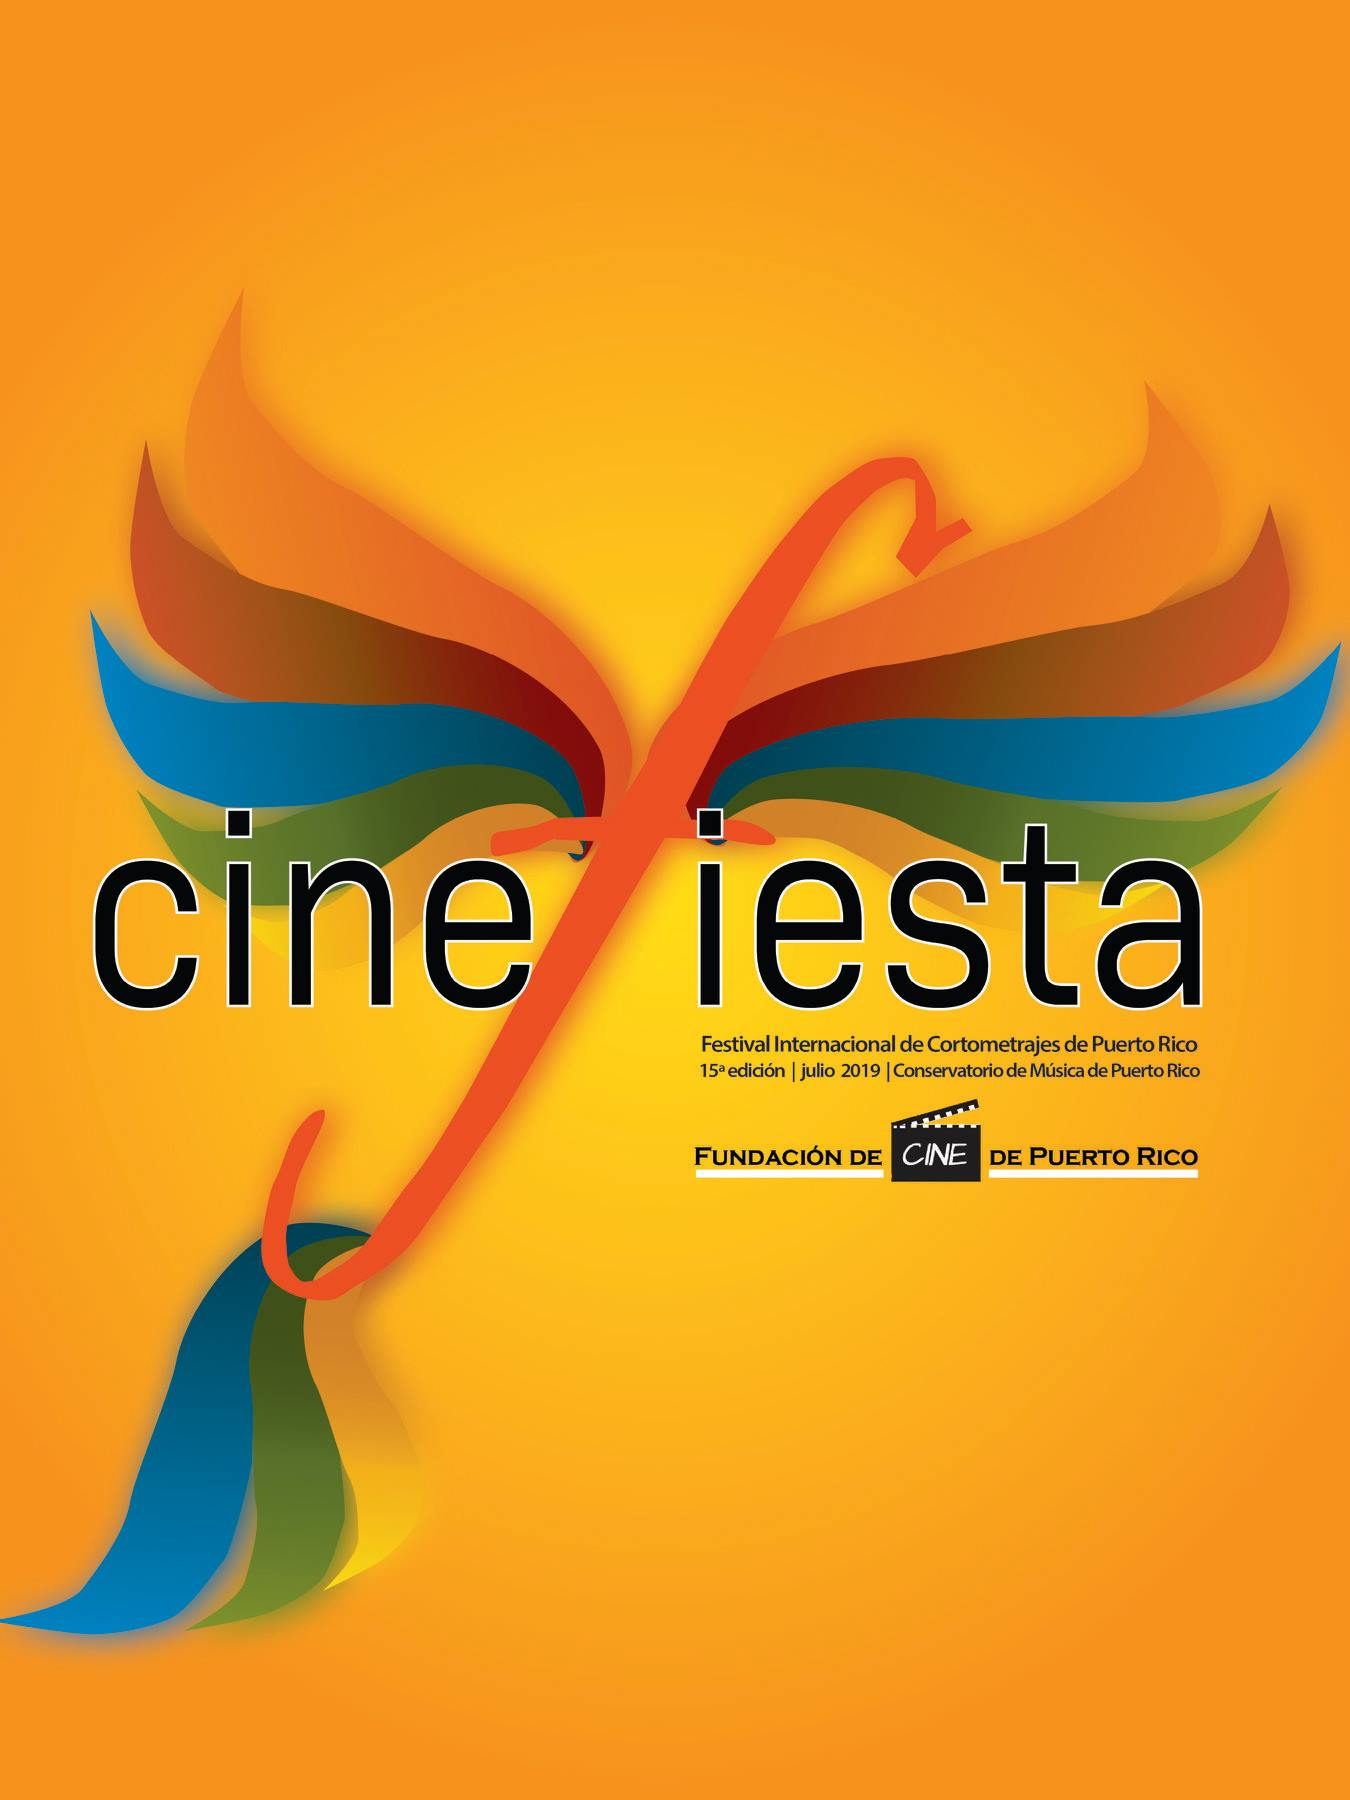 cinefiesta_poster.jpg